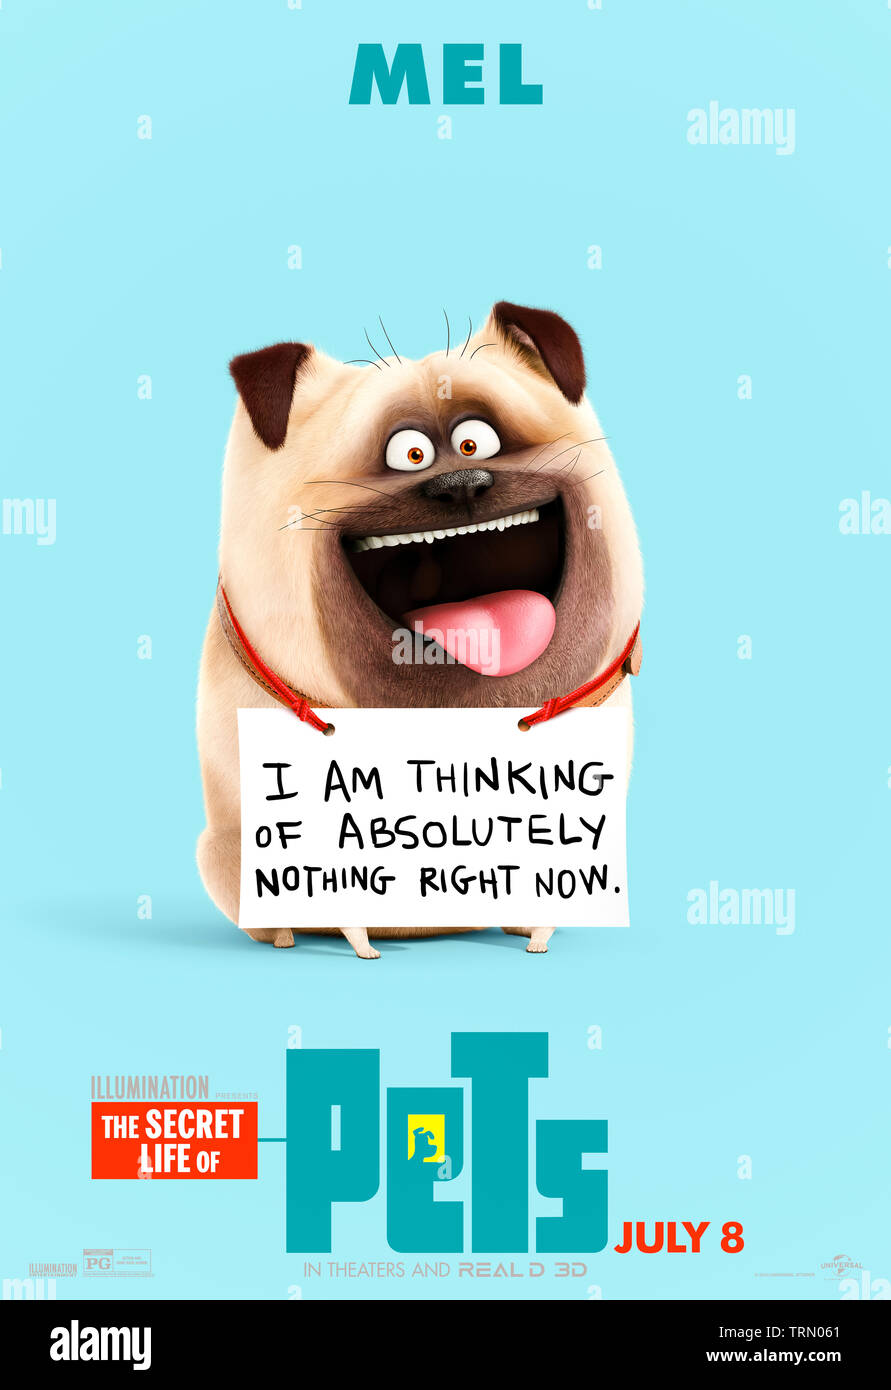 The Secret Life Of Pets 2 2019 Directed By Chris Renaud And Starring Mel Voiced By Bobby Moynihan Animated Sequel About What Pets Get Up To Whilst Their Owners Are Out For